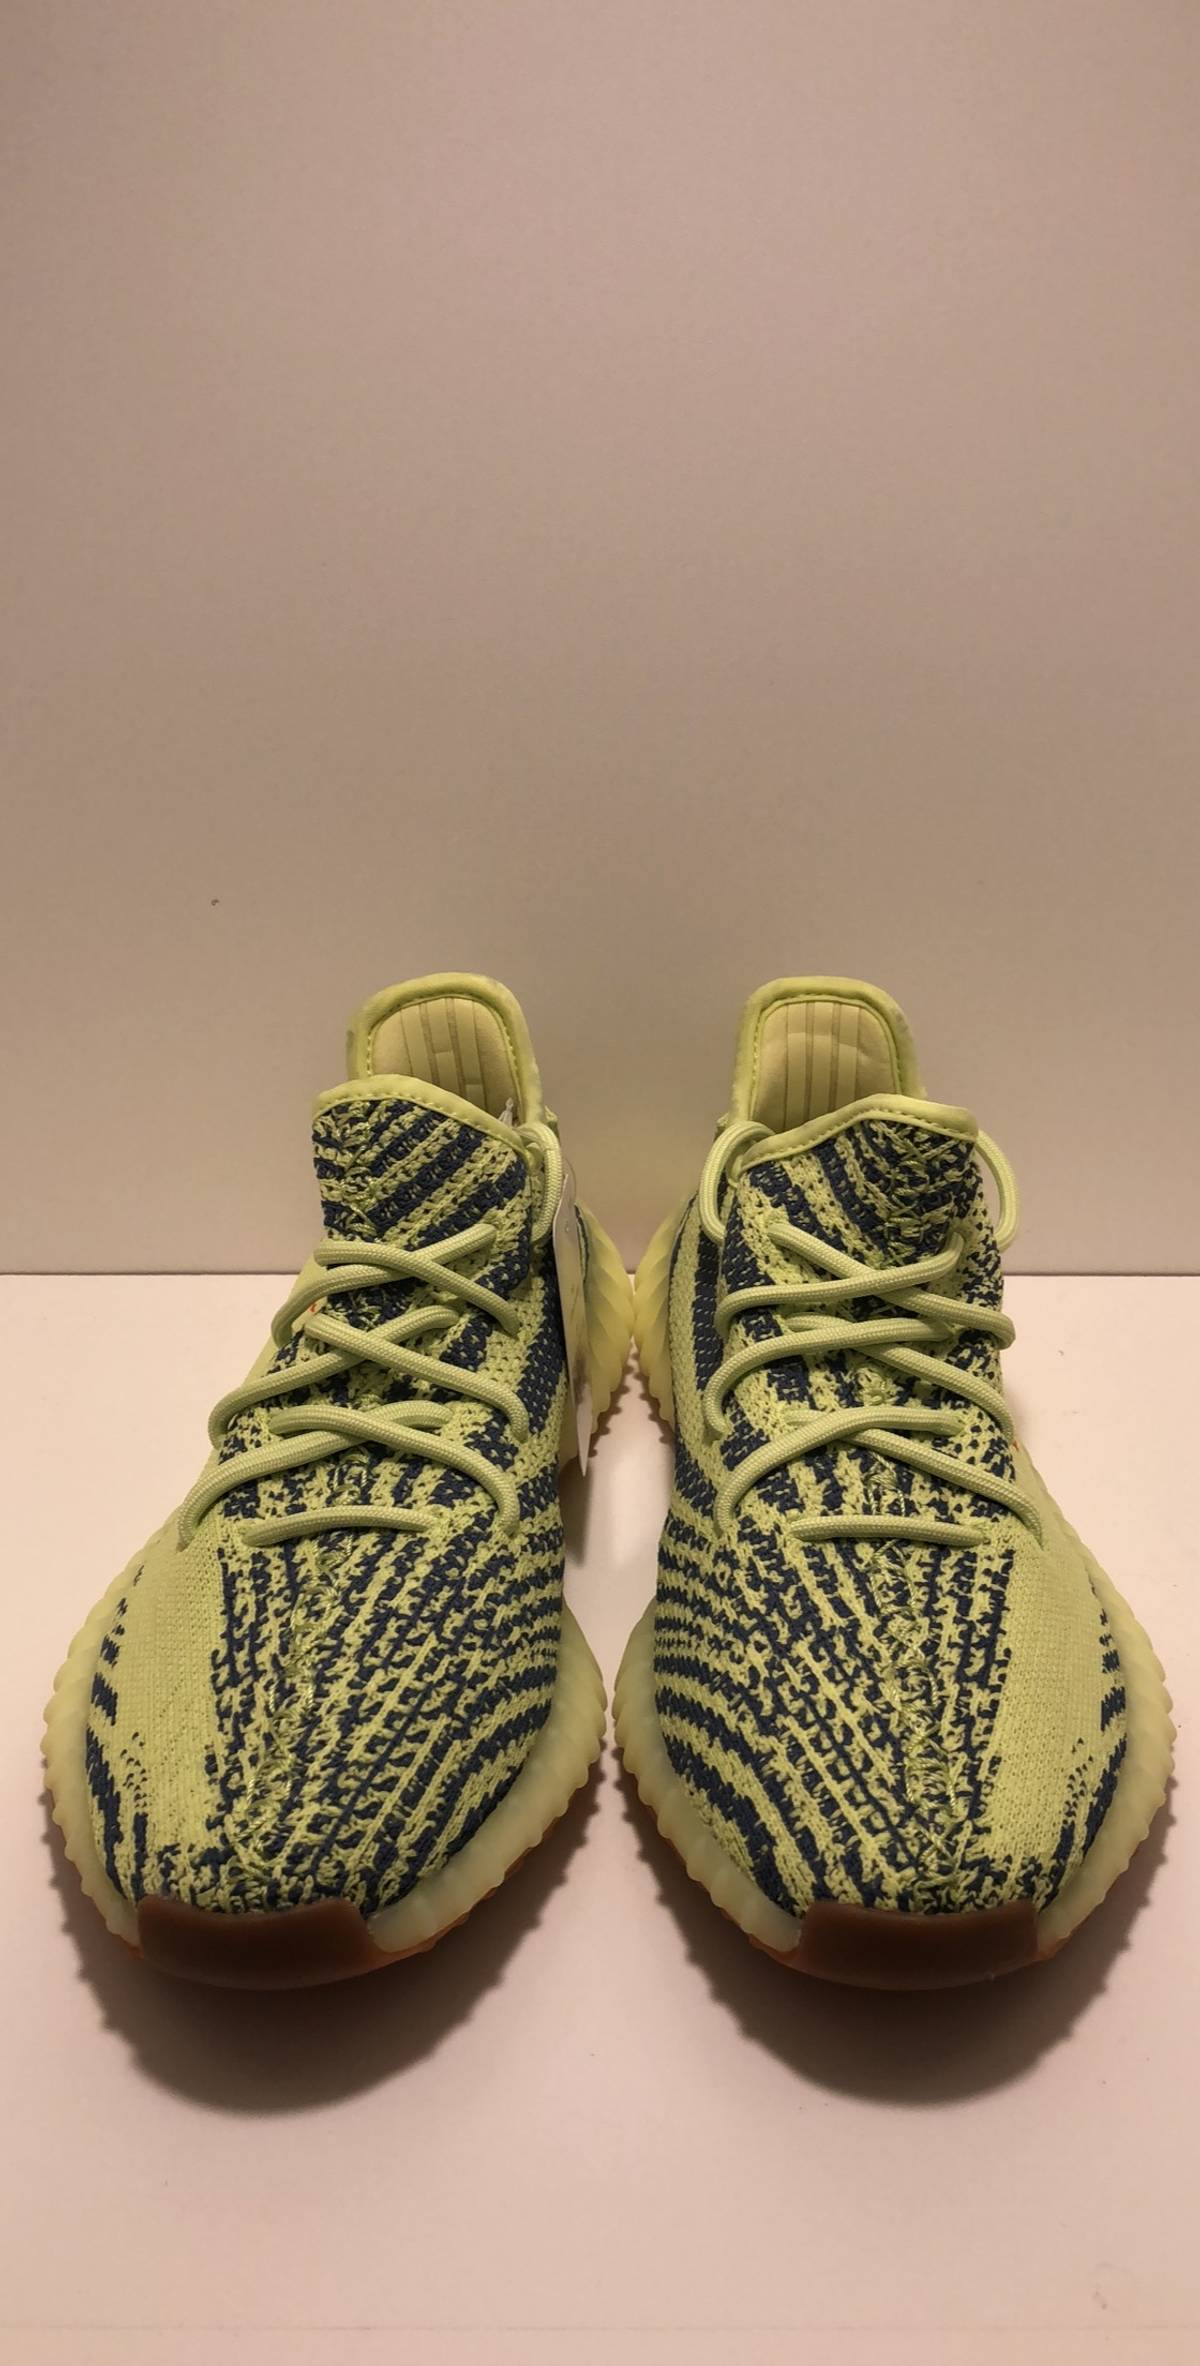 e6d5218c0 Yeezy Boost Adidas Yeezy Boost 350 V2 Semi Frozen Yellow | Grailed